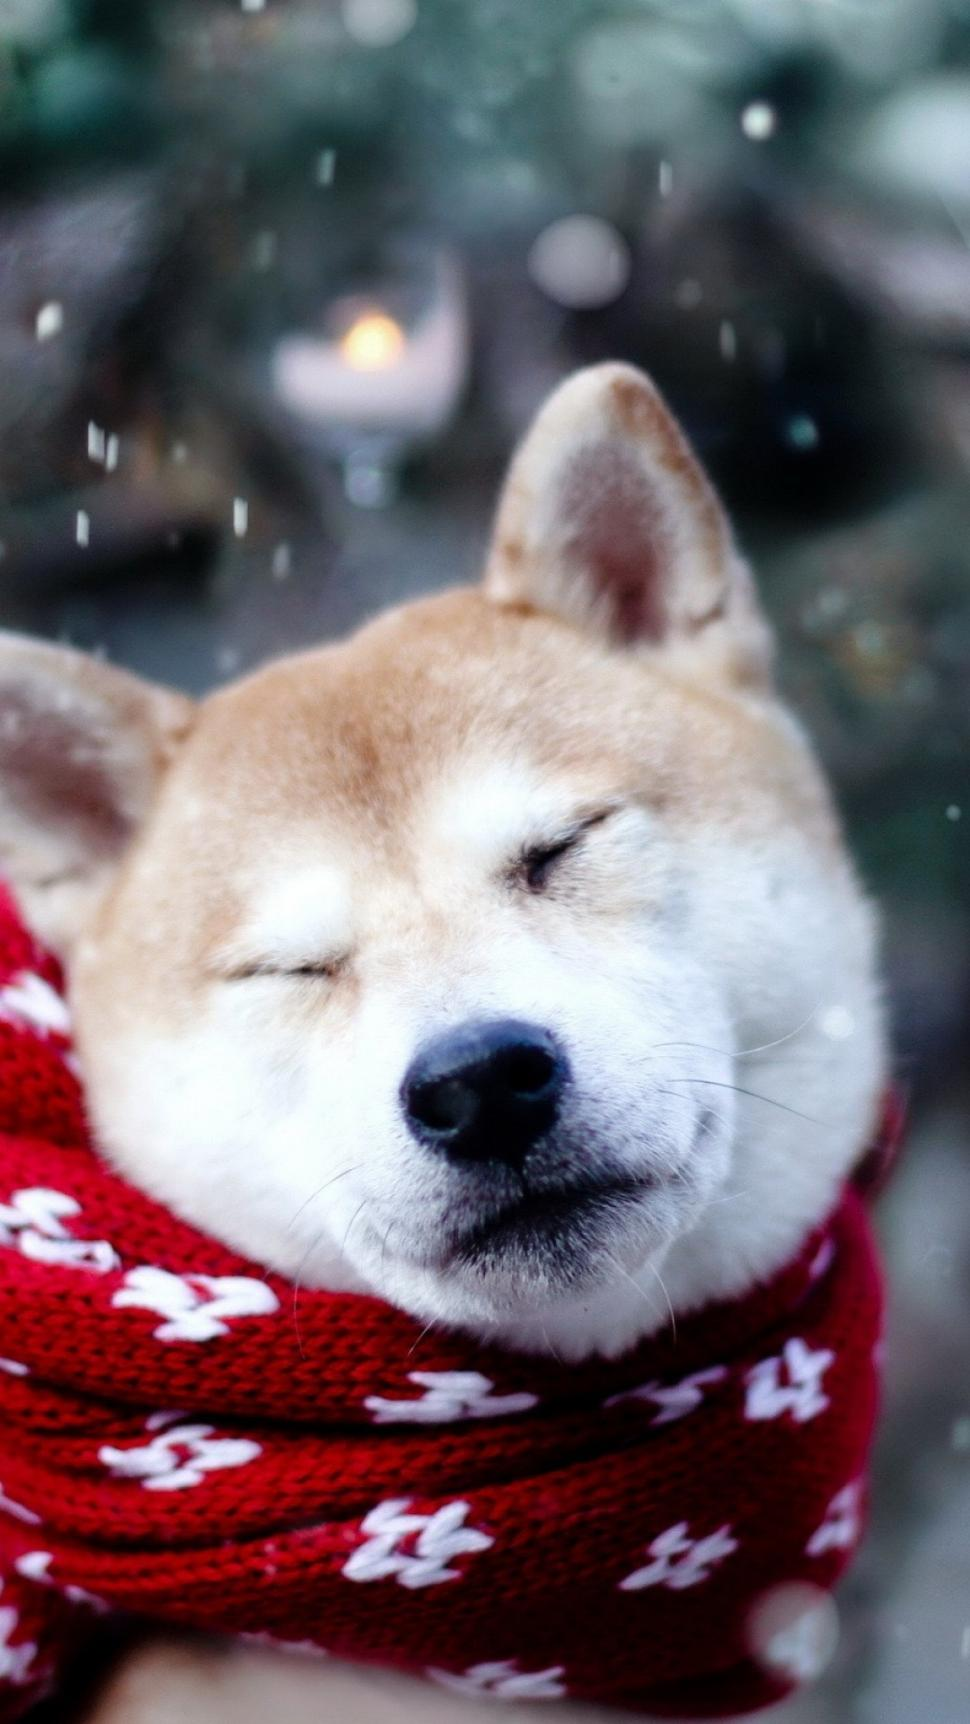 Dog Shiba Inu Sleeping Wallpaper Shiba Inu Wallpaper Iphone 6 262825 Hd Wallpaper Backgrounds Download